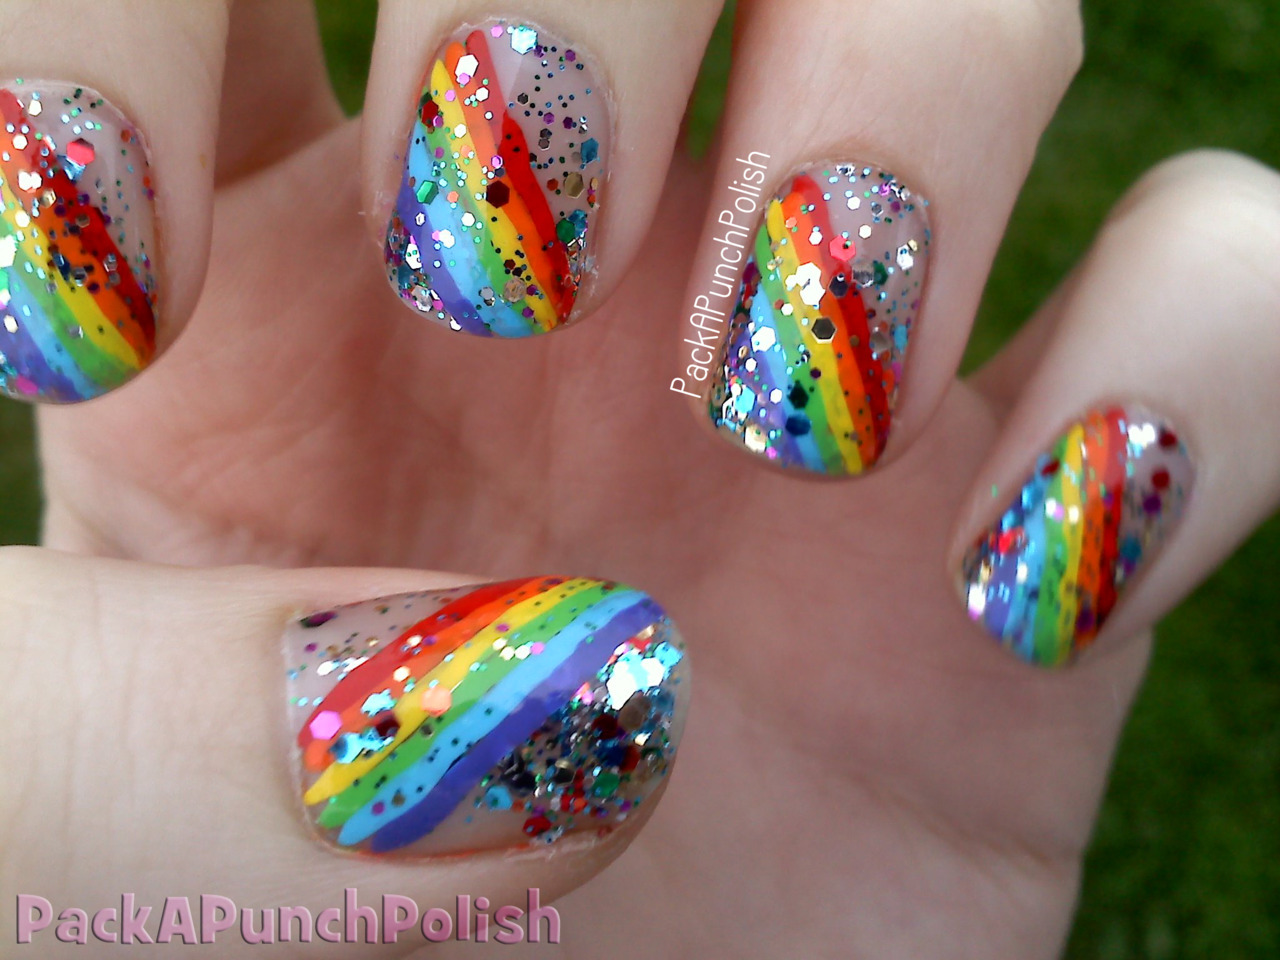 Day 9: RAINBOW nails  I had something completely different on my nails and majorly messed it up. To be honest… I had no extra energy to do my nails again so this is all I could make myself do last night. They're not too terribly bad…. right?  Claire's Bedazzled Rainbow done with acrylic paint